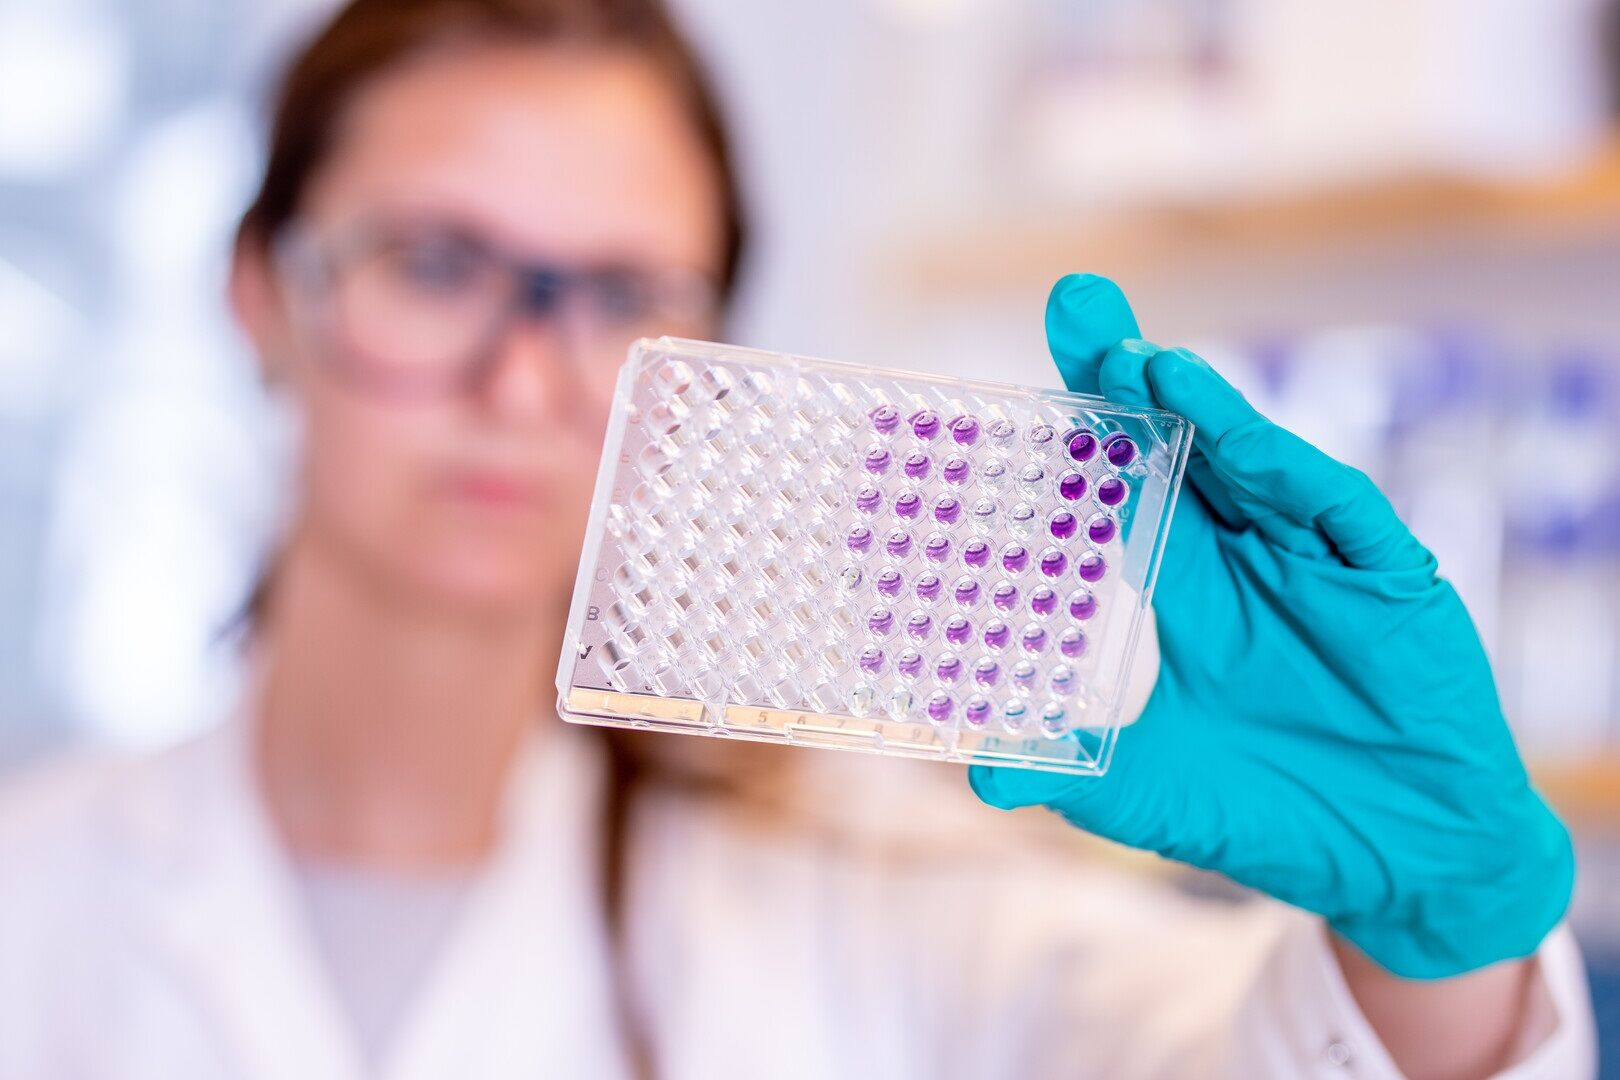 Clinical trials confirm AstraZeneca's Covid-19 vaccine is safe and effective | The Thaiger